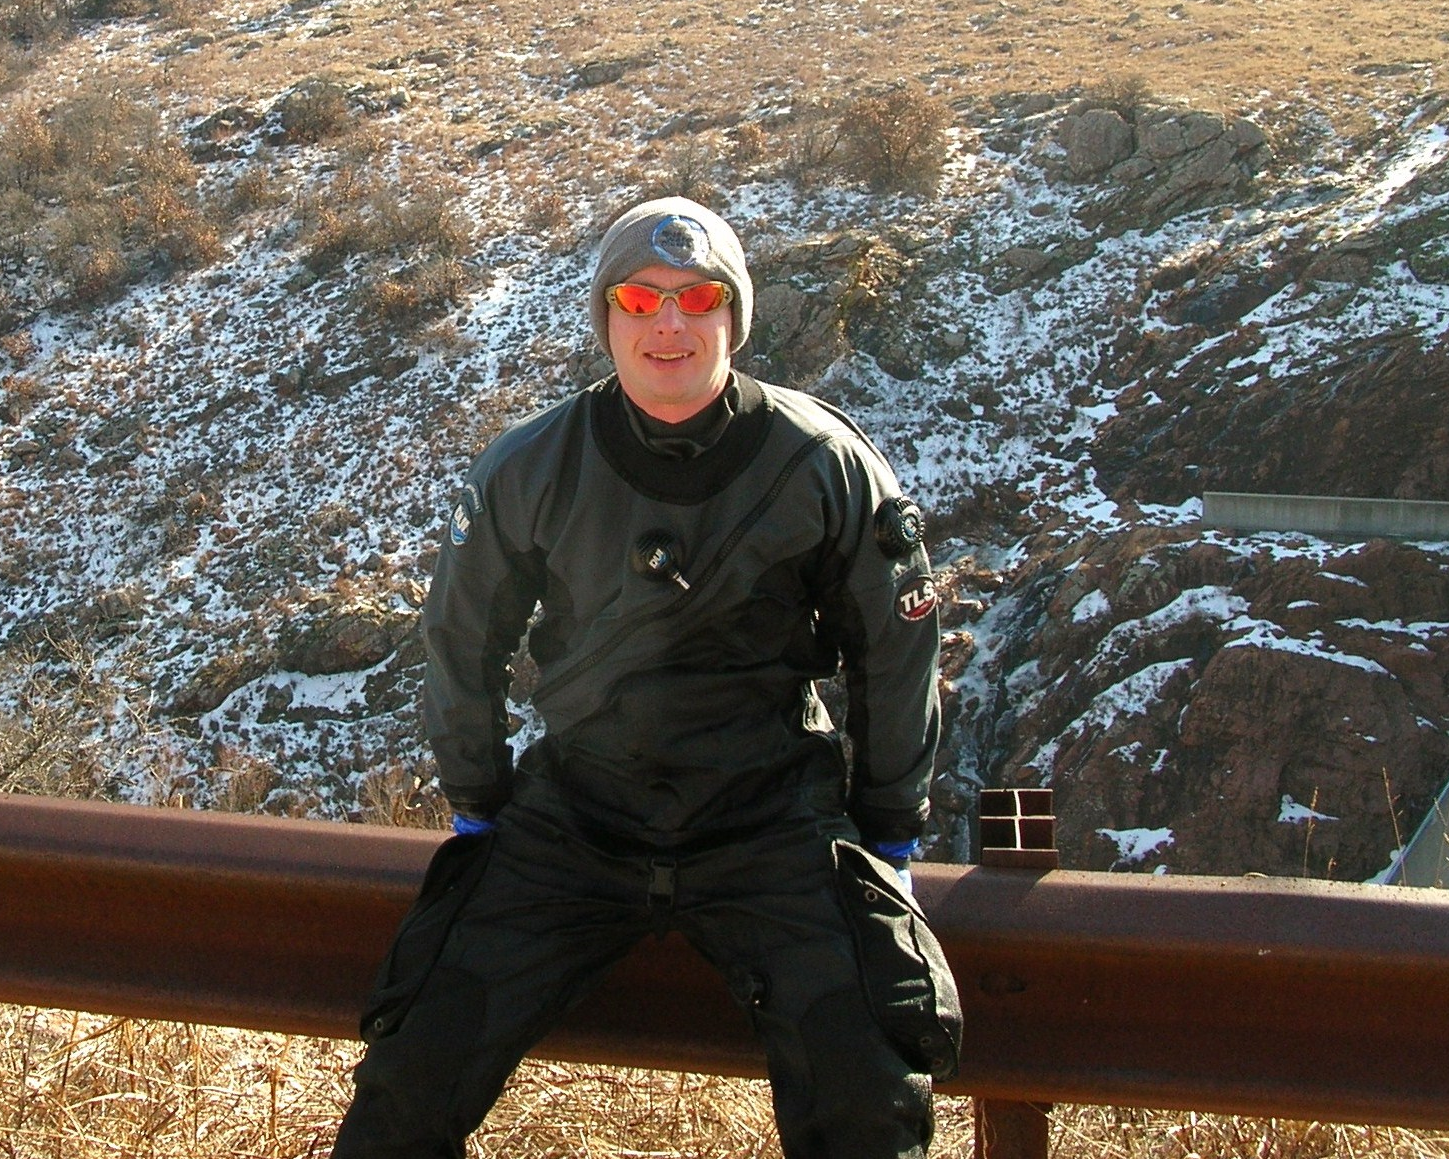 A fun but chilly day at Lake Elmer Thomas in January 2012